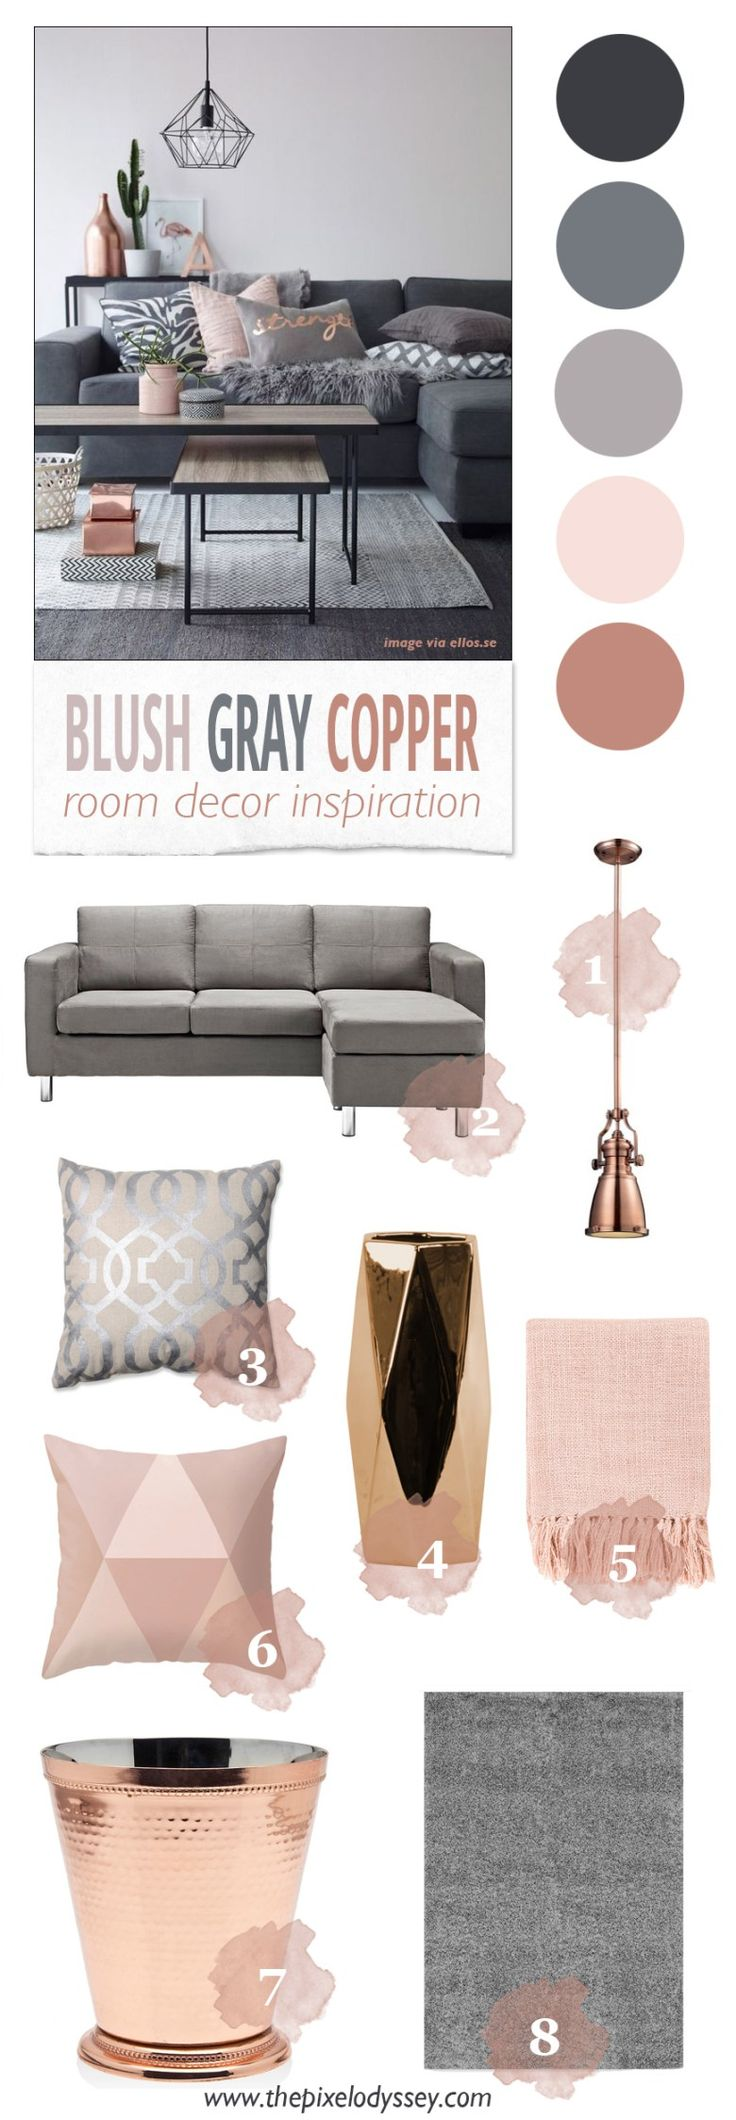 Blush Gray Copper Room Decor Inspiration - The Pixel Odyssey